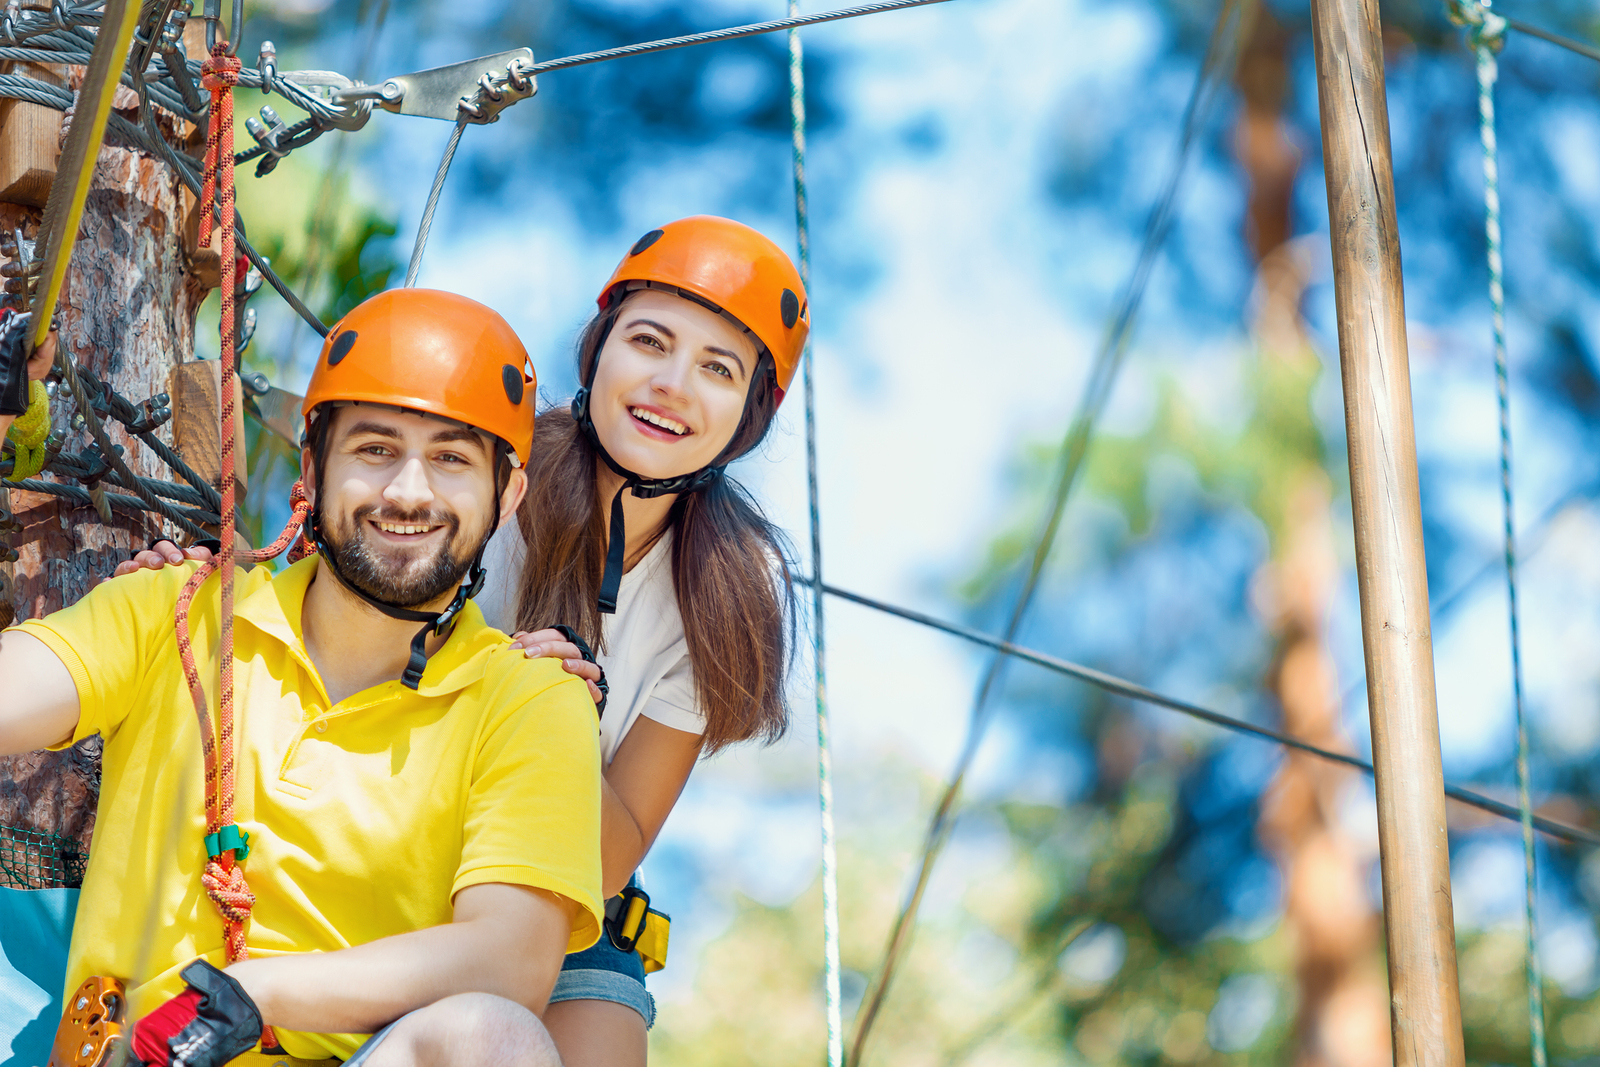 Young woman and man in protective gear are sitting on rope bridge hanging on high trees, posing and smiling. Rope adventure park with obstacles and ziplines. Extreme rest and summer activities concept